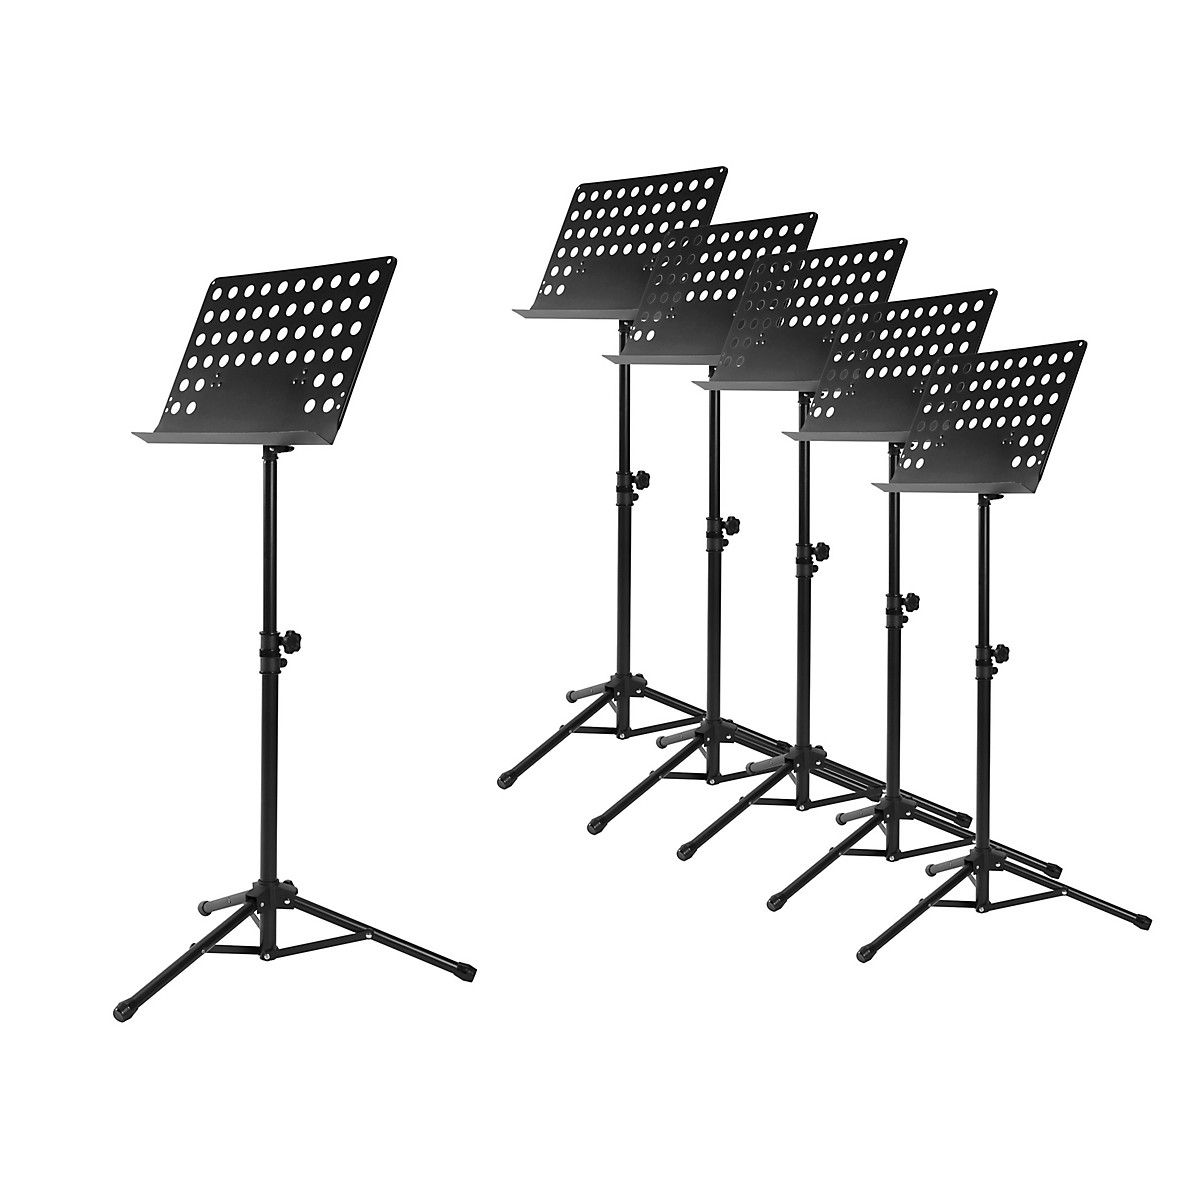 Musician's Gear Perforated Tripod Orchestral Music Stand, Black - 6 Pack